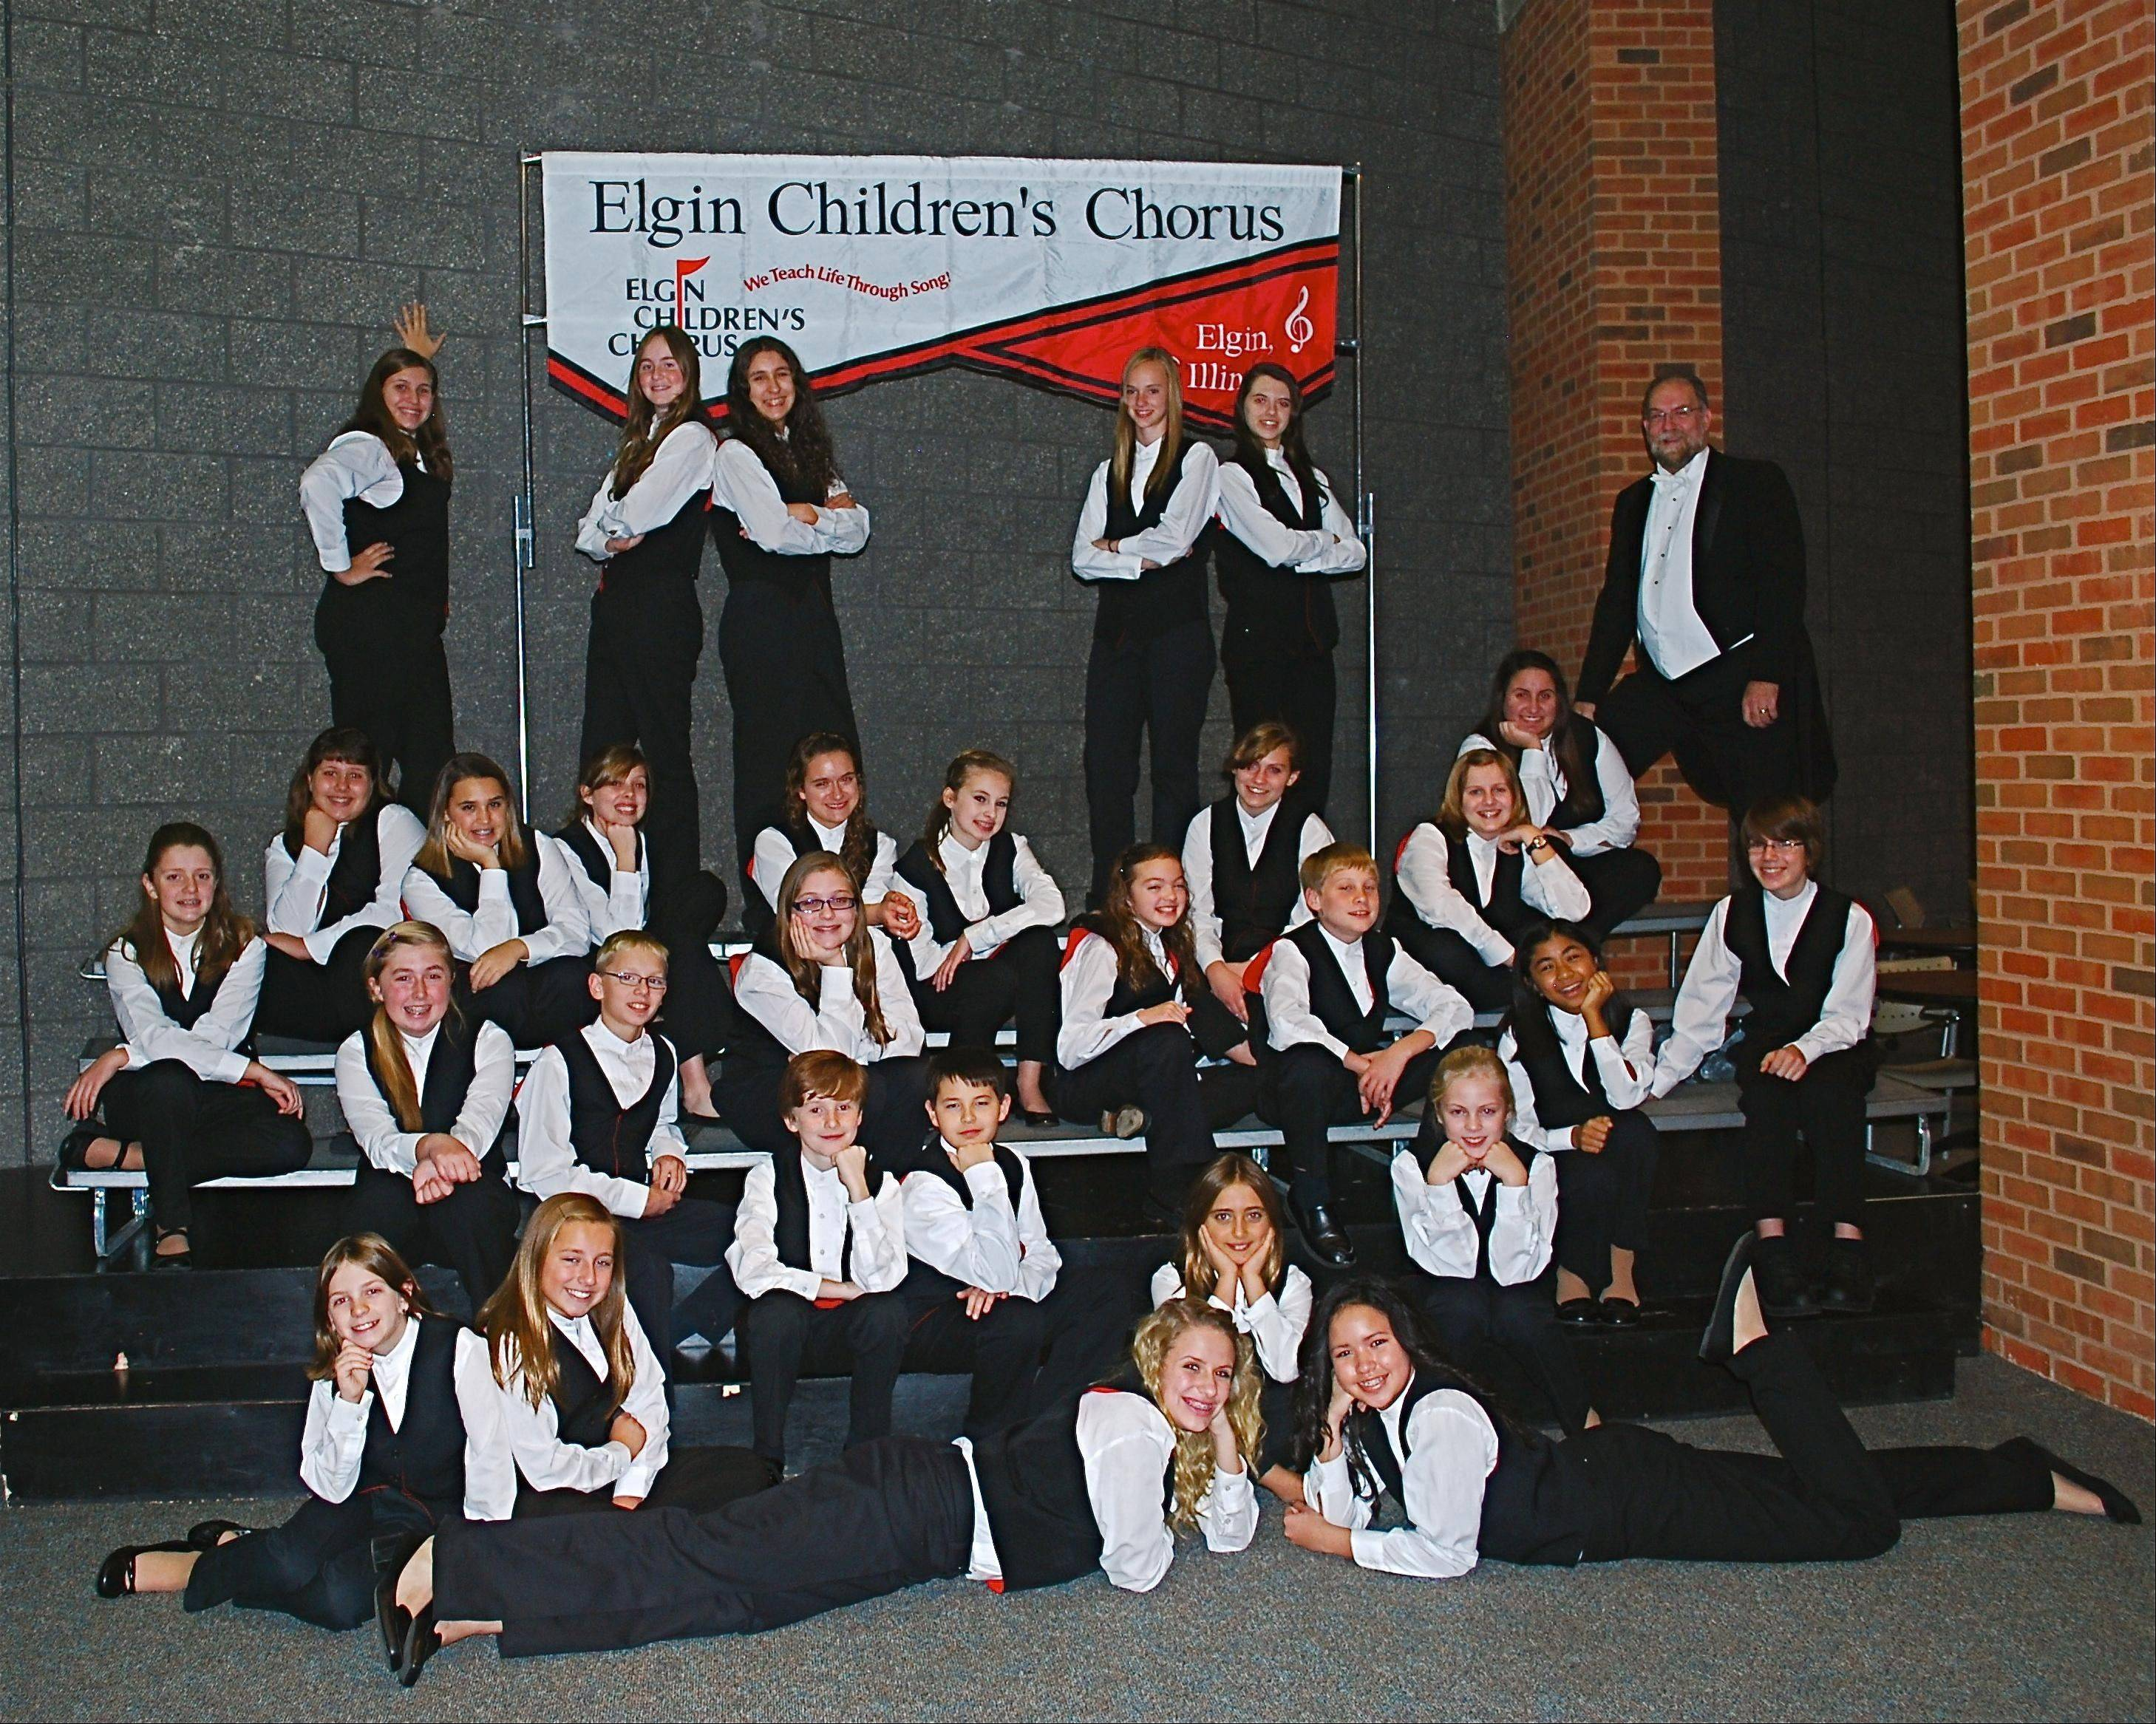 The Elgin Children's Chorus will hold auditions Dec. 17-18 for its Chamber Choir, Treble Choir, Concert Choir and Boys Ensemble. The Concert Choir also will perform this weekend with the Elgin Symphony Orchestra.